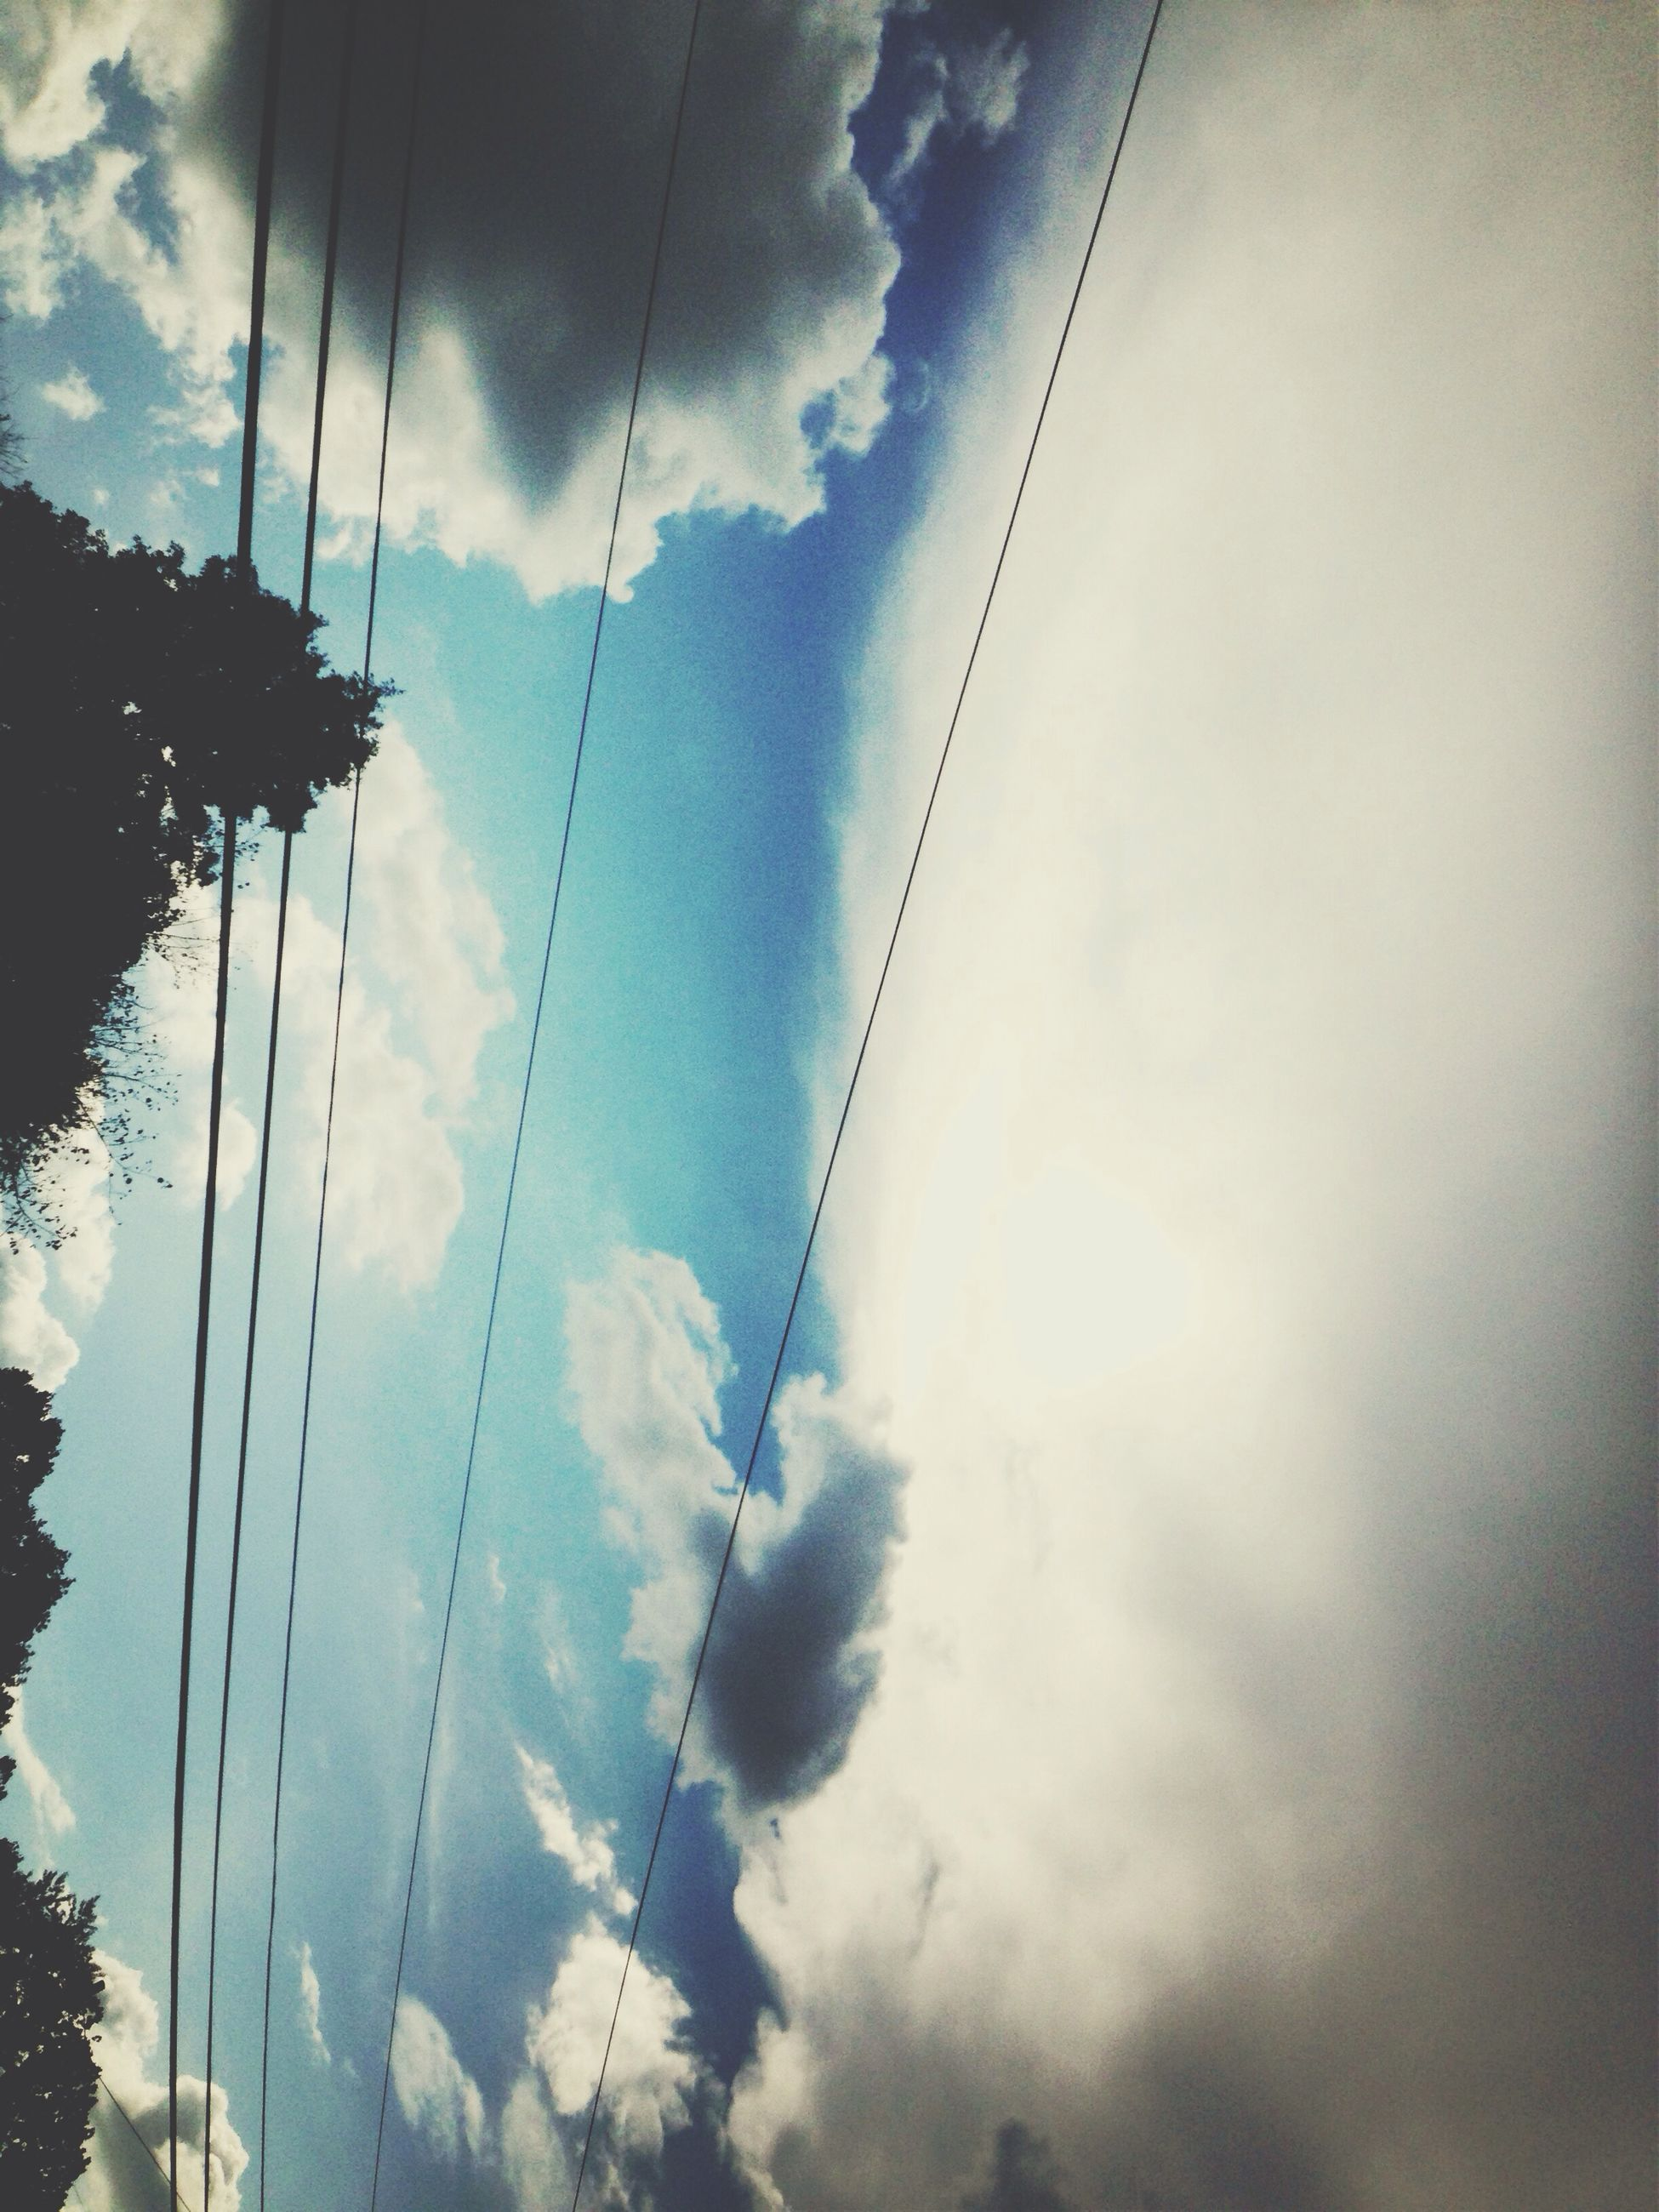 sky, cloud - sky, low angle view, connection, power line, cloudy, cable, transportation, electricity pylon, electricity, cloud, built structure, power supply, bridge - man made structure, architecture, outdoors, no people, nature, weather, day